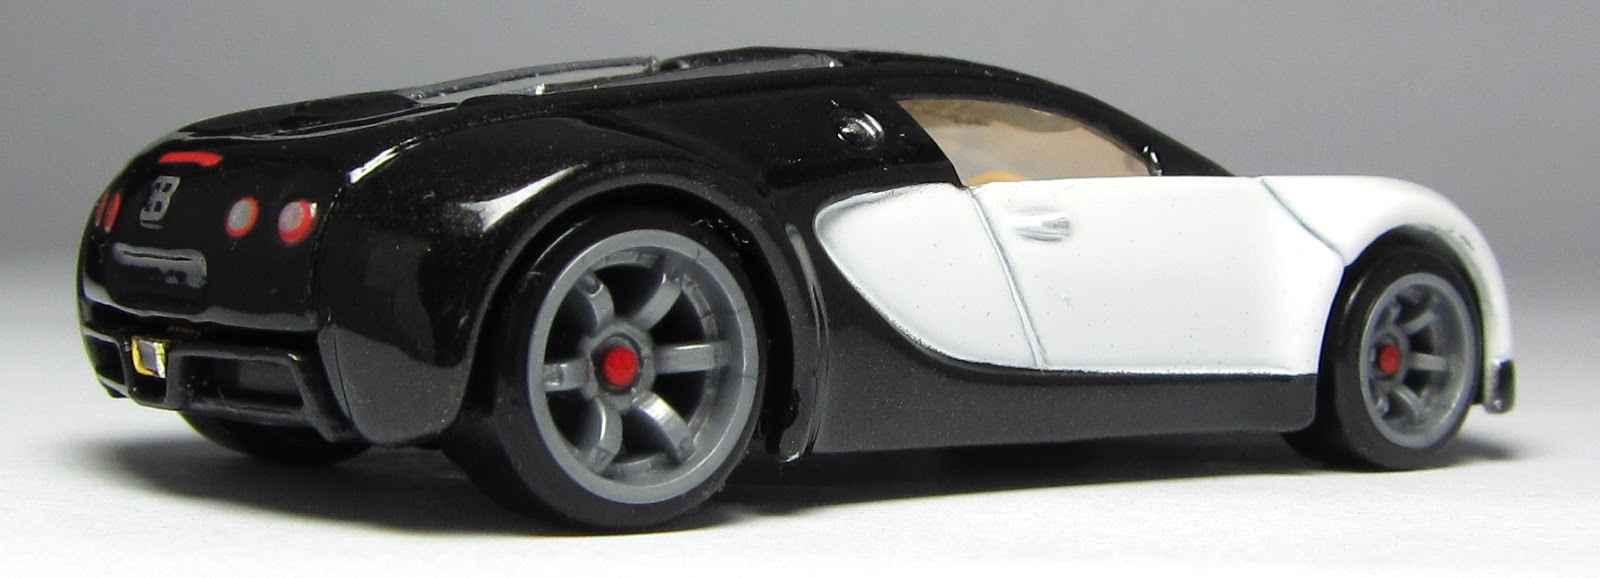 bugatti veyron wheels price these cufflinks are made from the aluminum of a bugatti veyron 39 s. Black Bedroom Furniture Sets. Home Design Ideas